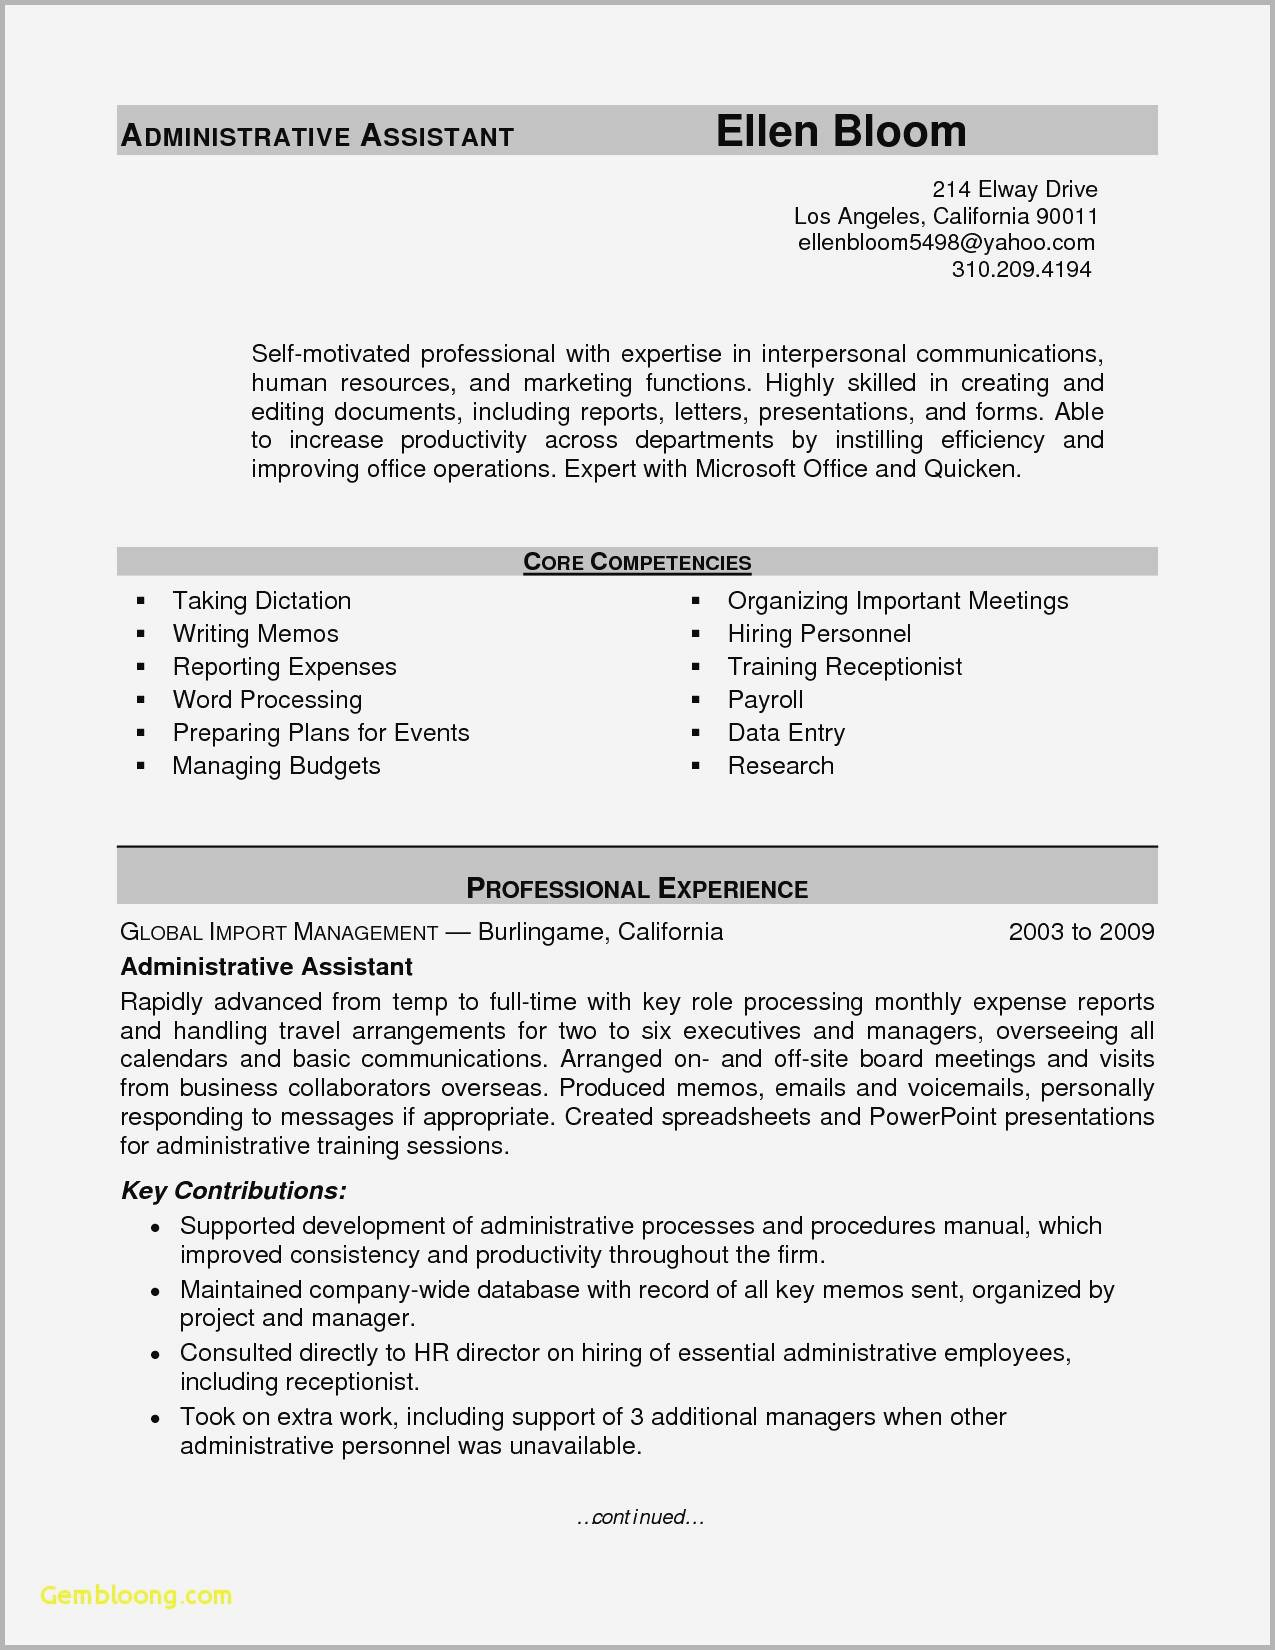 Core Competencies Resume Sample - Resume Example for Administrative assistant Image Exemple De Cv